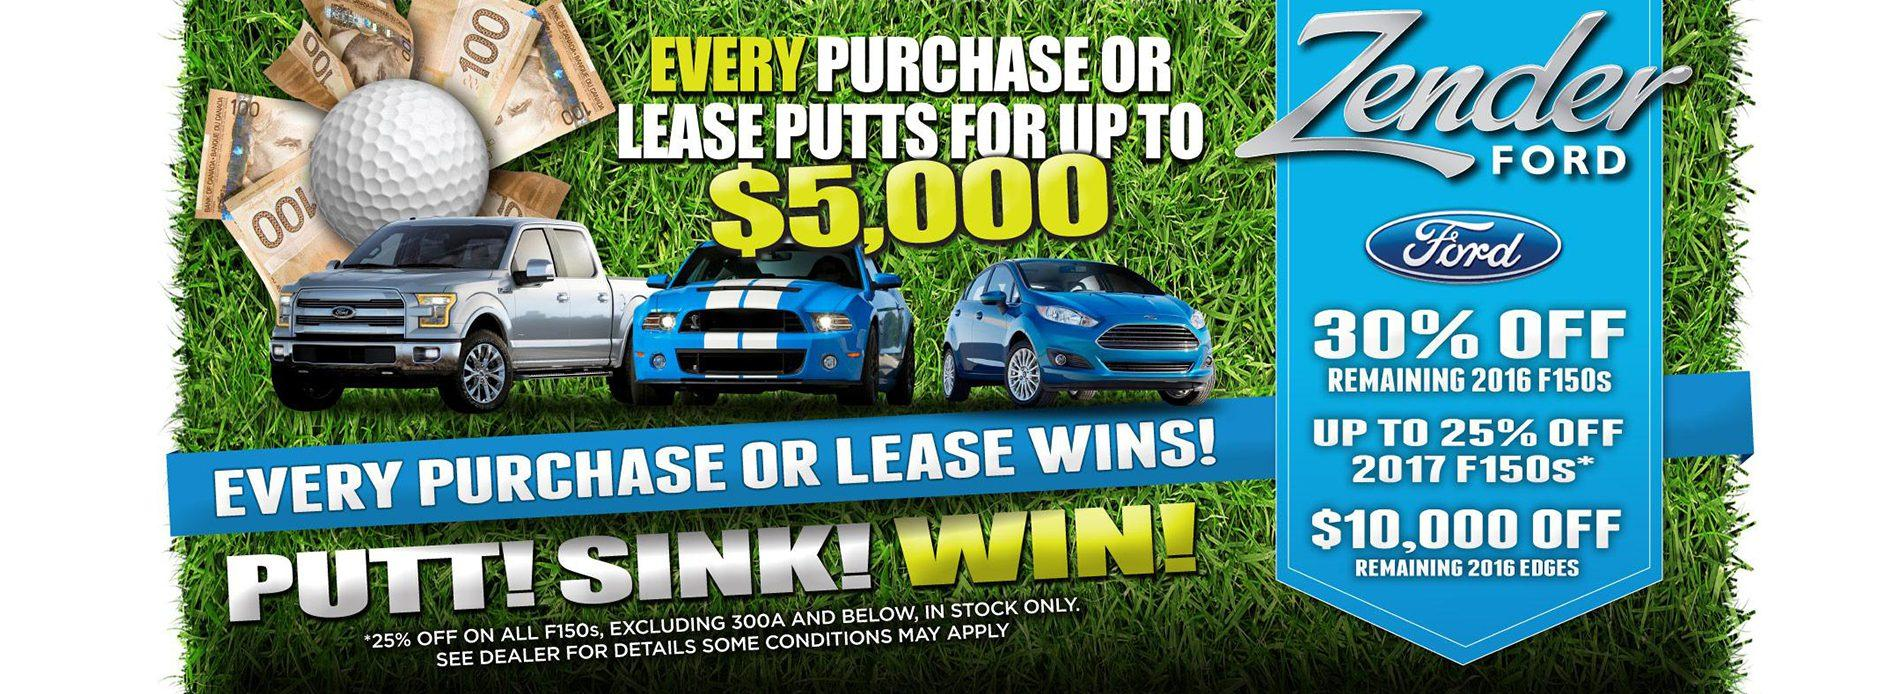 Every Purchase or Lease Putts up to $5000